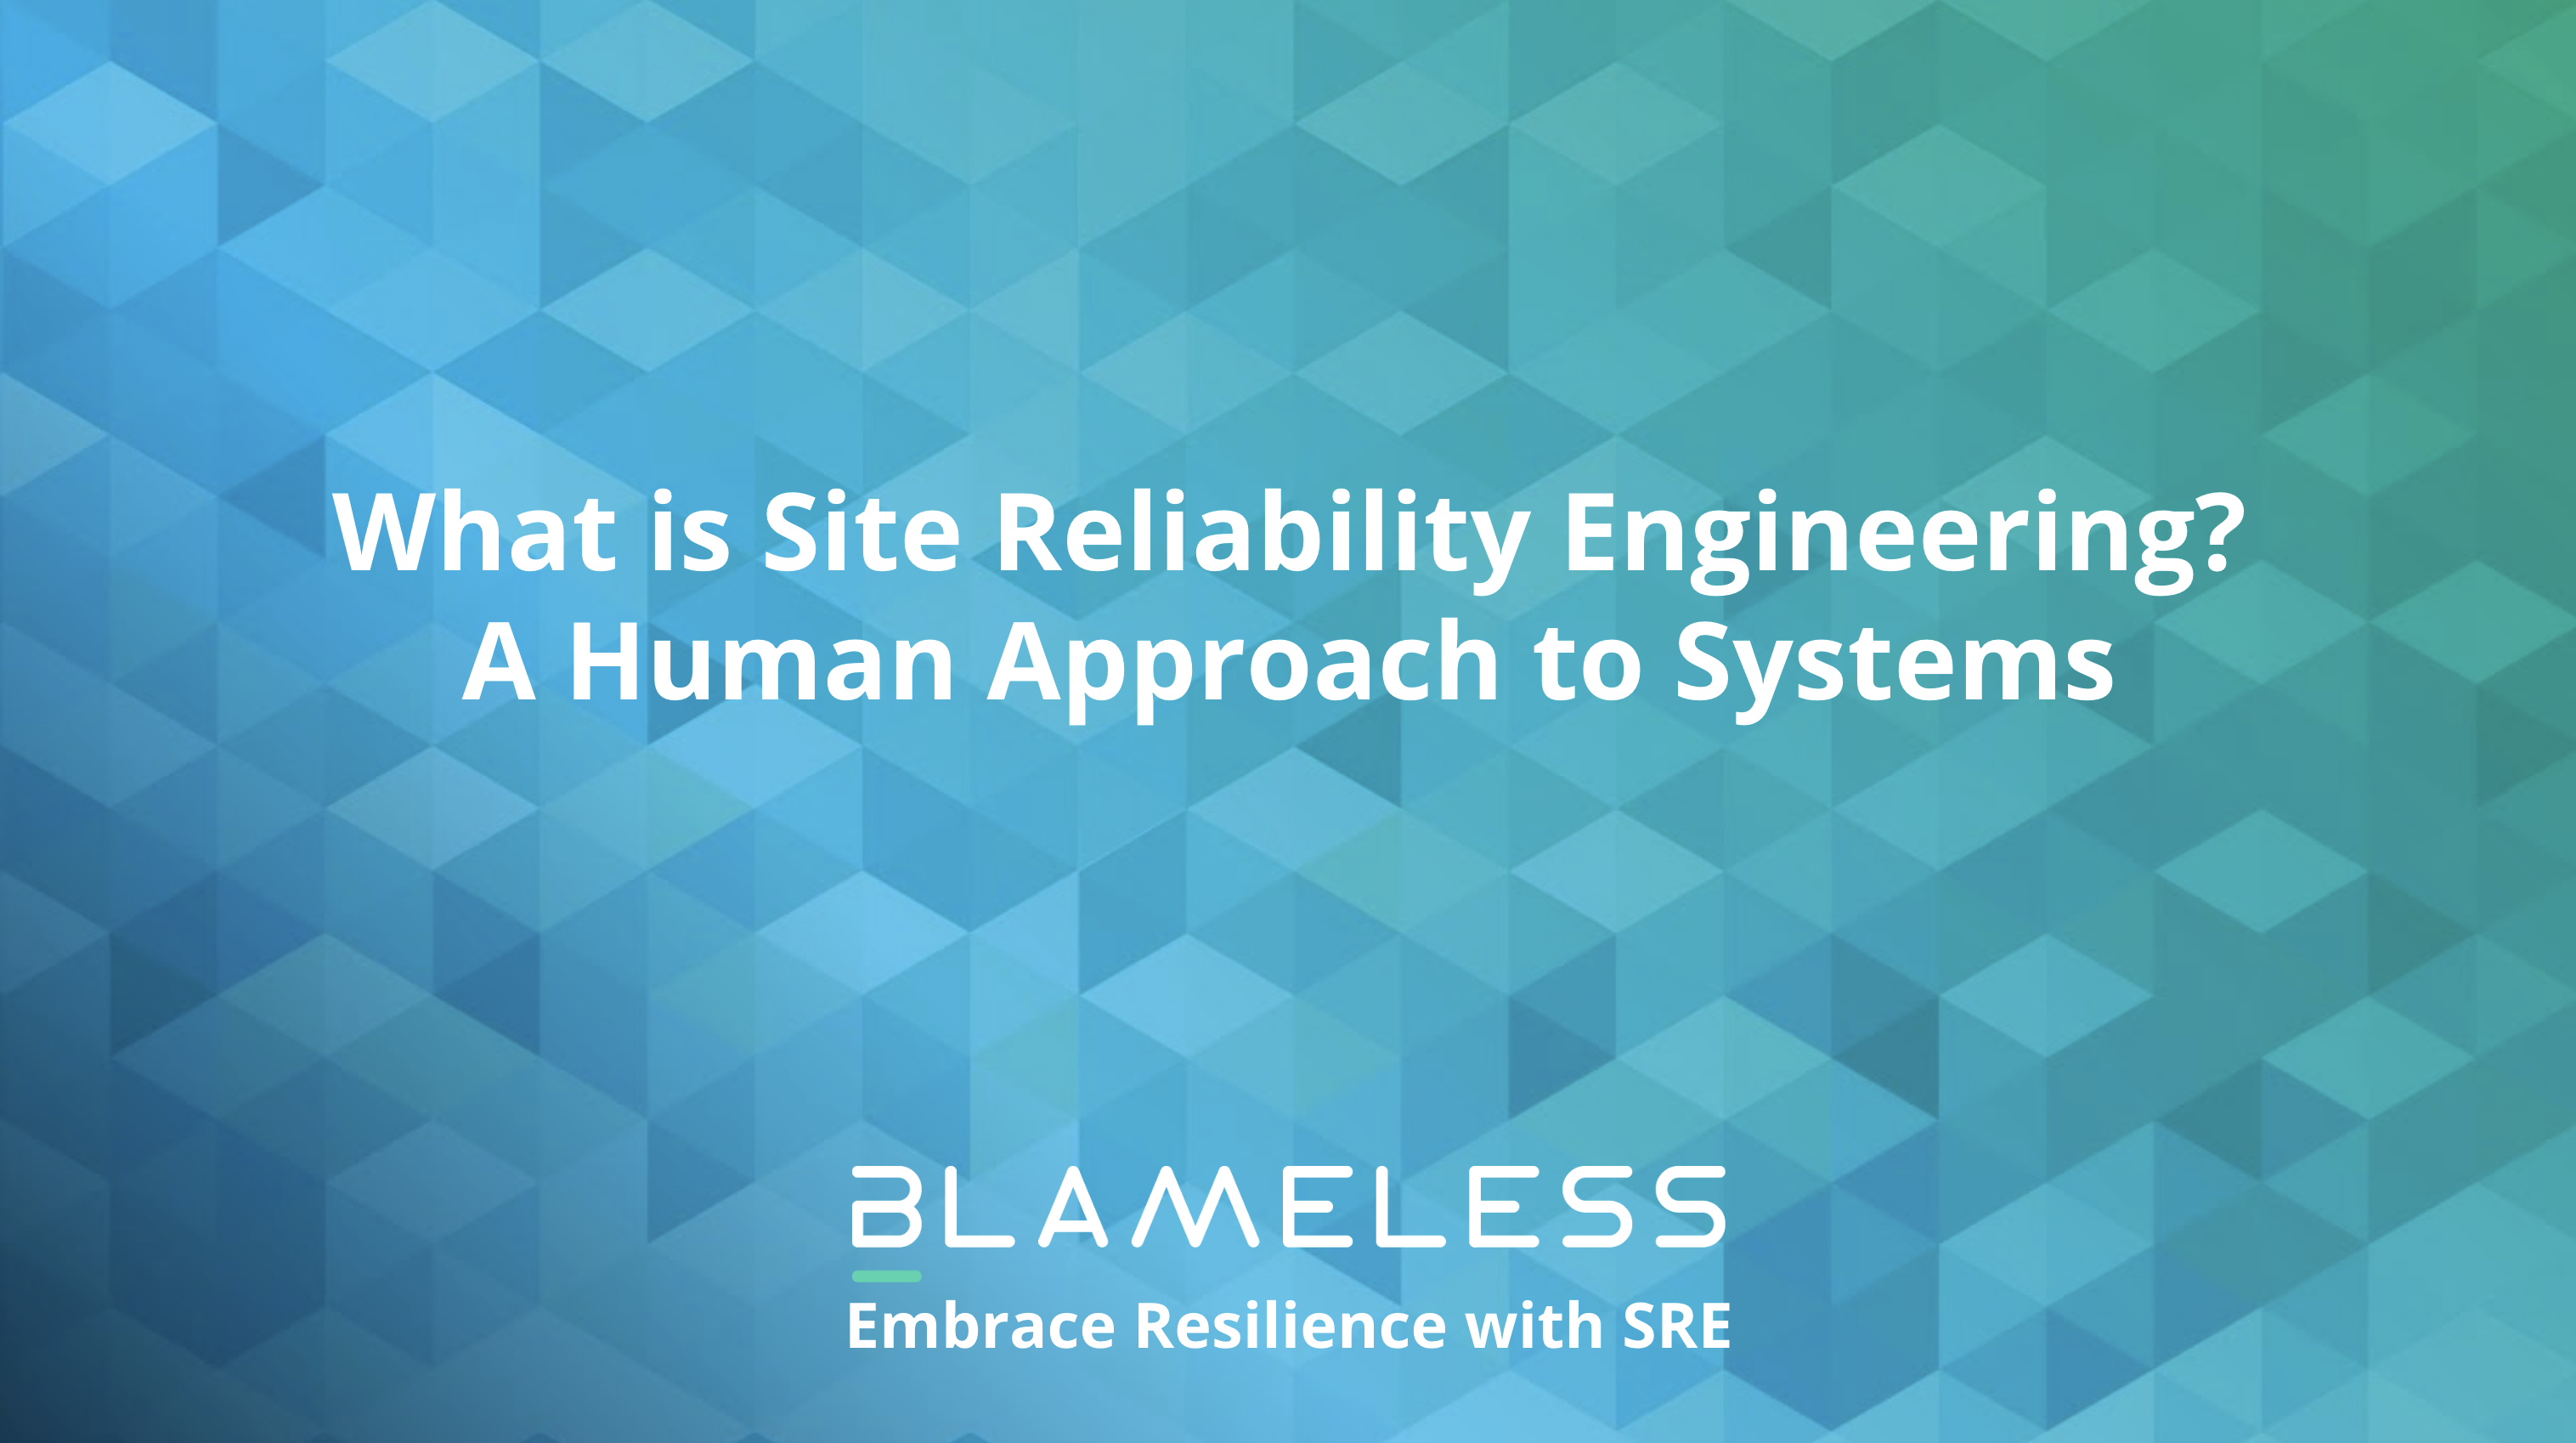 What is Site Reliability Engineering? A Human Approach to Systems